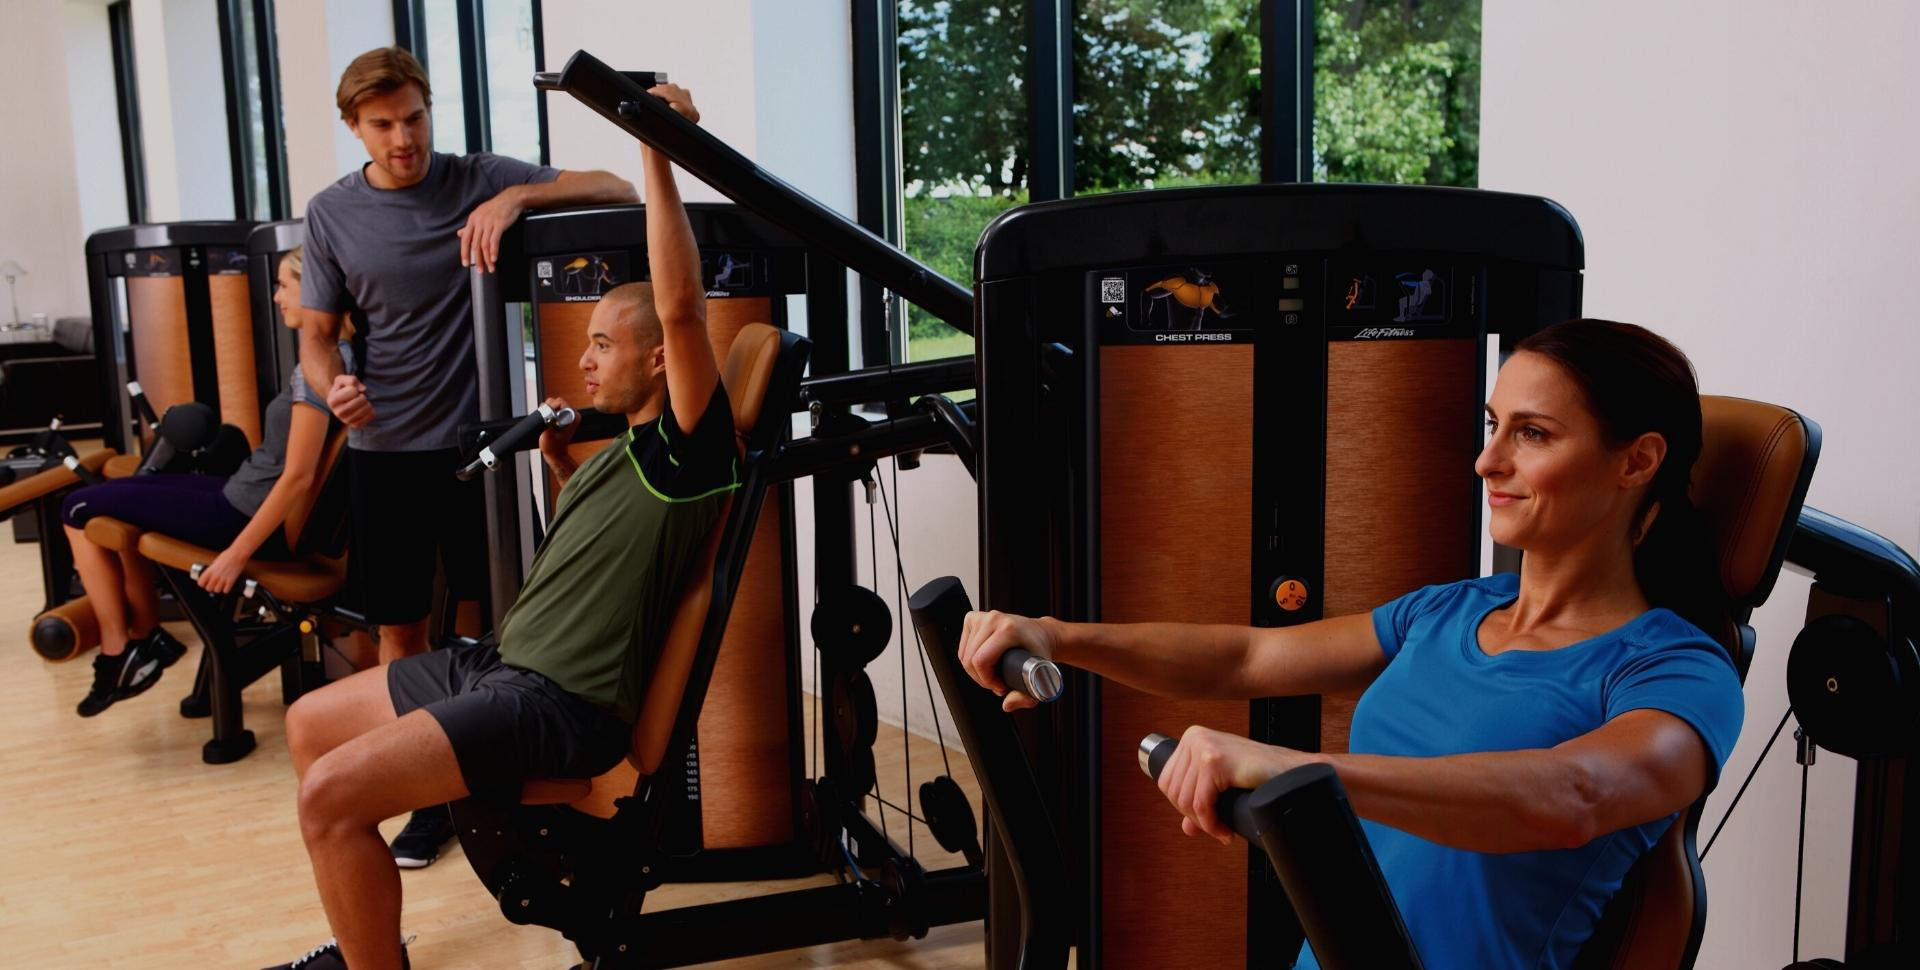 People working out at gym using strength machines in fitness 19 midland park new jersey gym